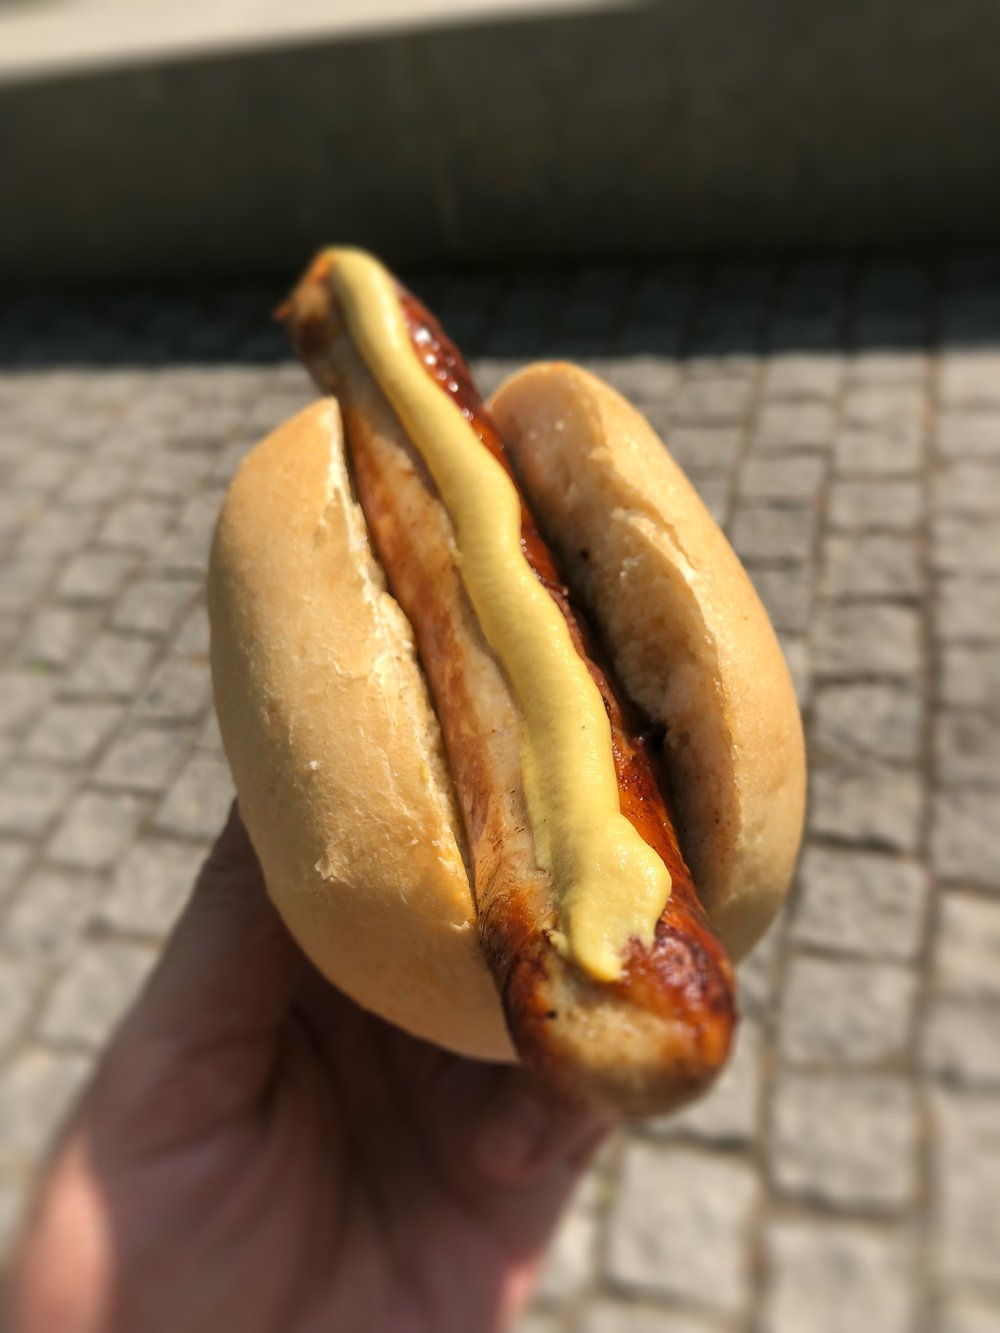 German Bratwurst - Robust flavor from J-Train's motherland. We ate this puppy in Dresden and it didn't disappoint! The bun was fresh, the mustard was spicy, and the sausage was worth the line we waited in!